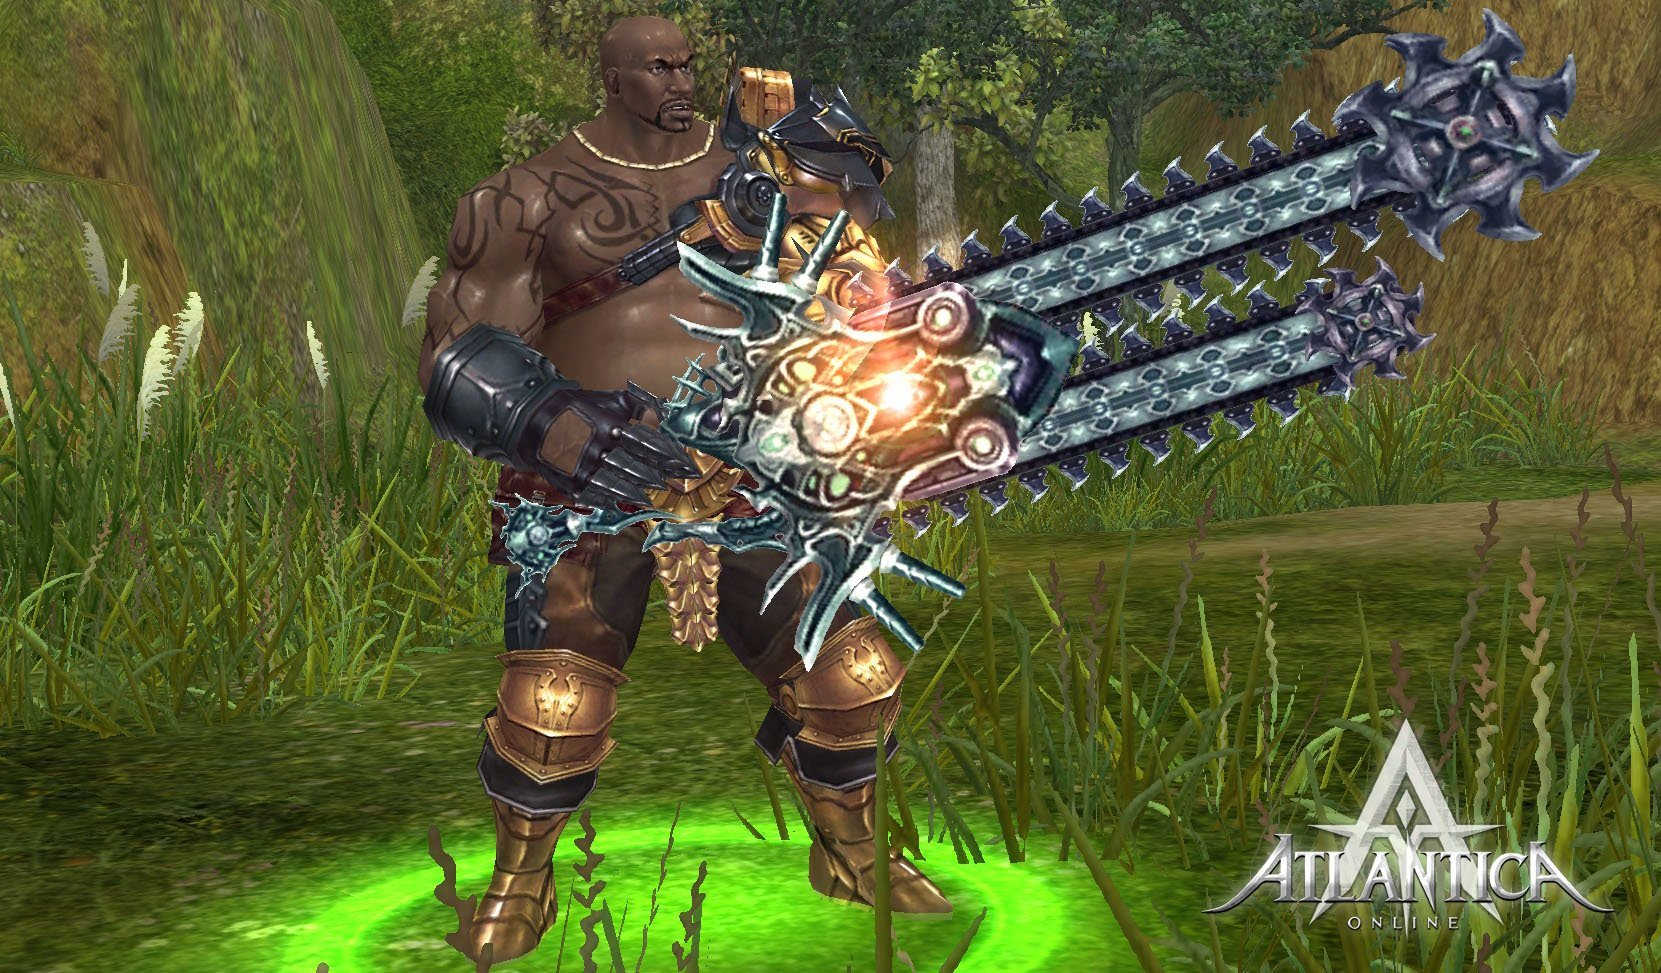 Atlantica Online: The Punisher